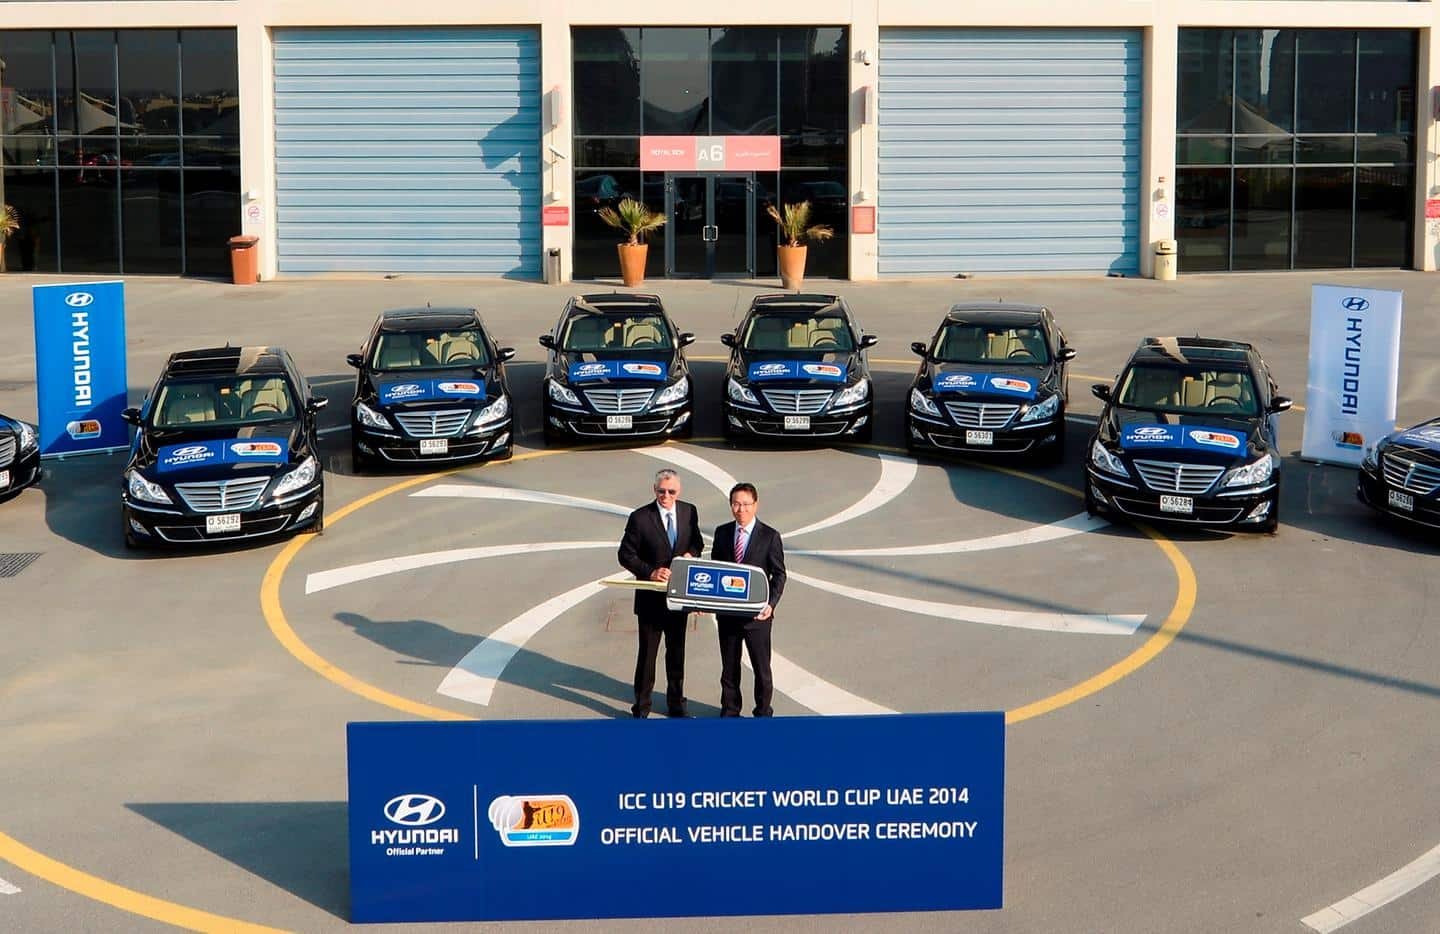 ICC takes delivery of new Hyundai fleet for the ICC U19 Cricket World Cup